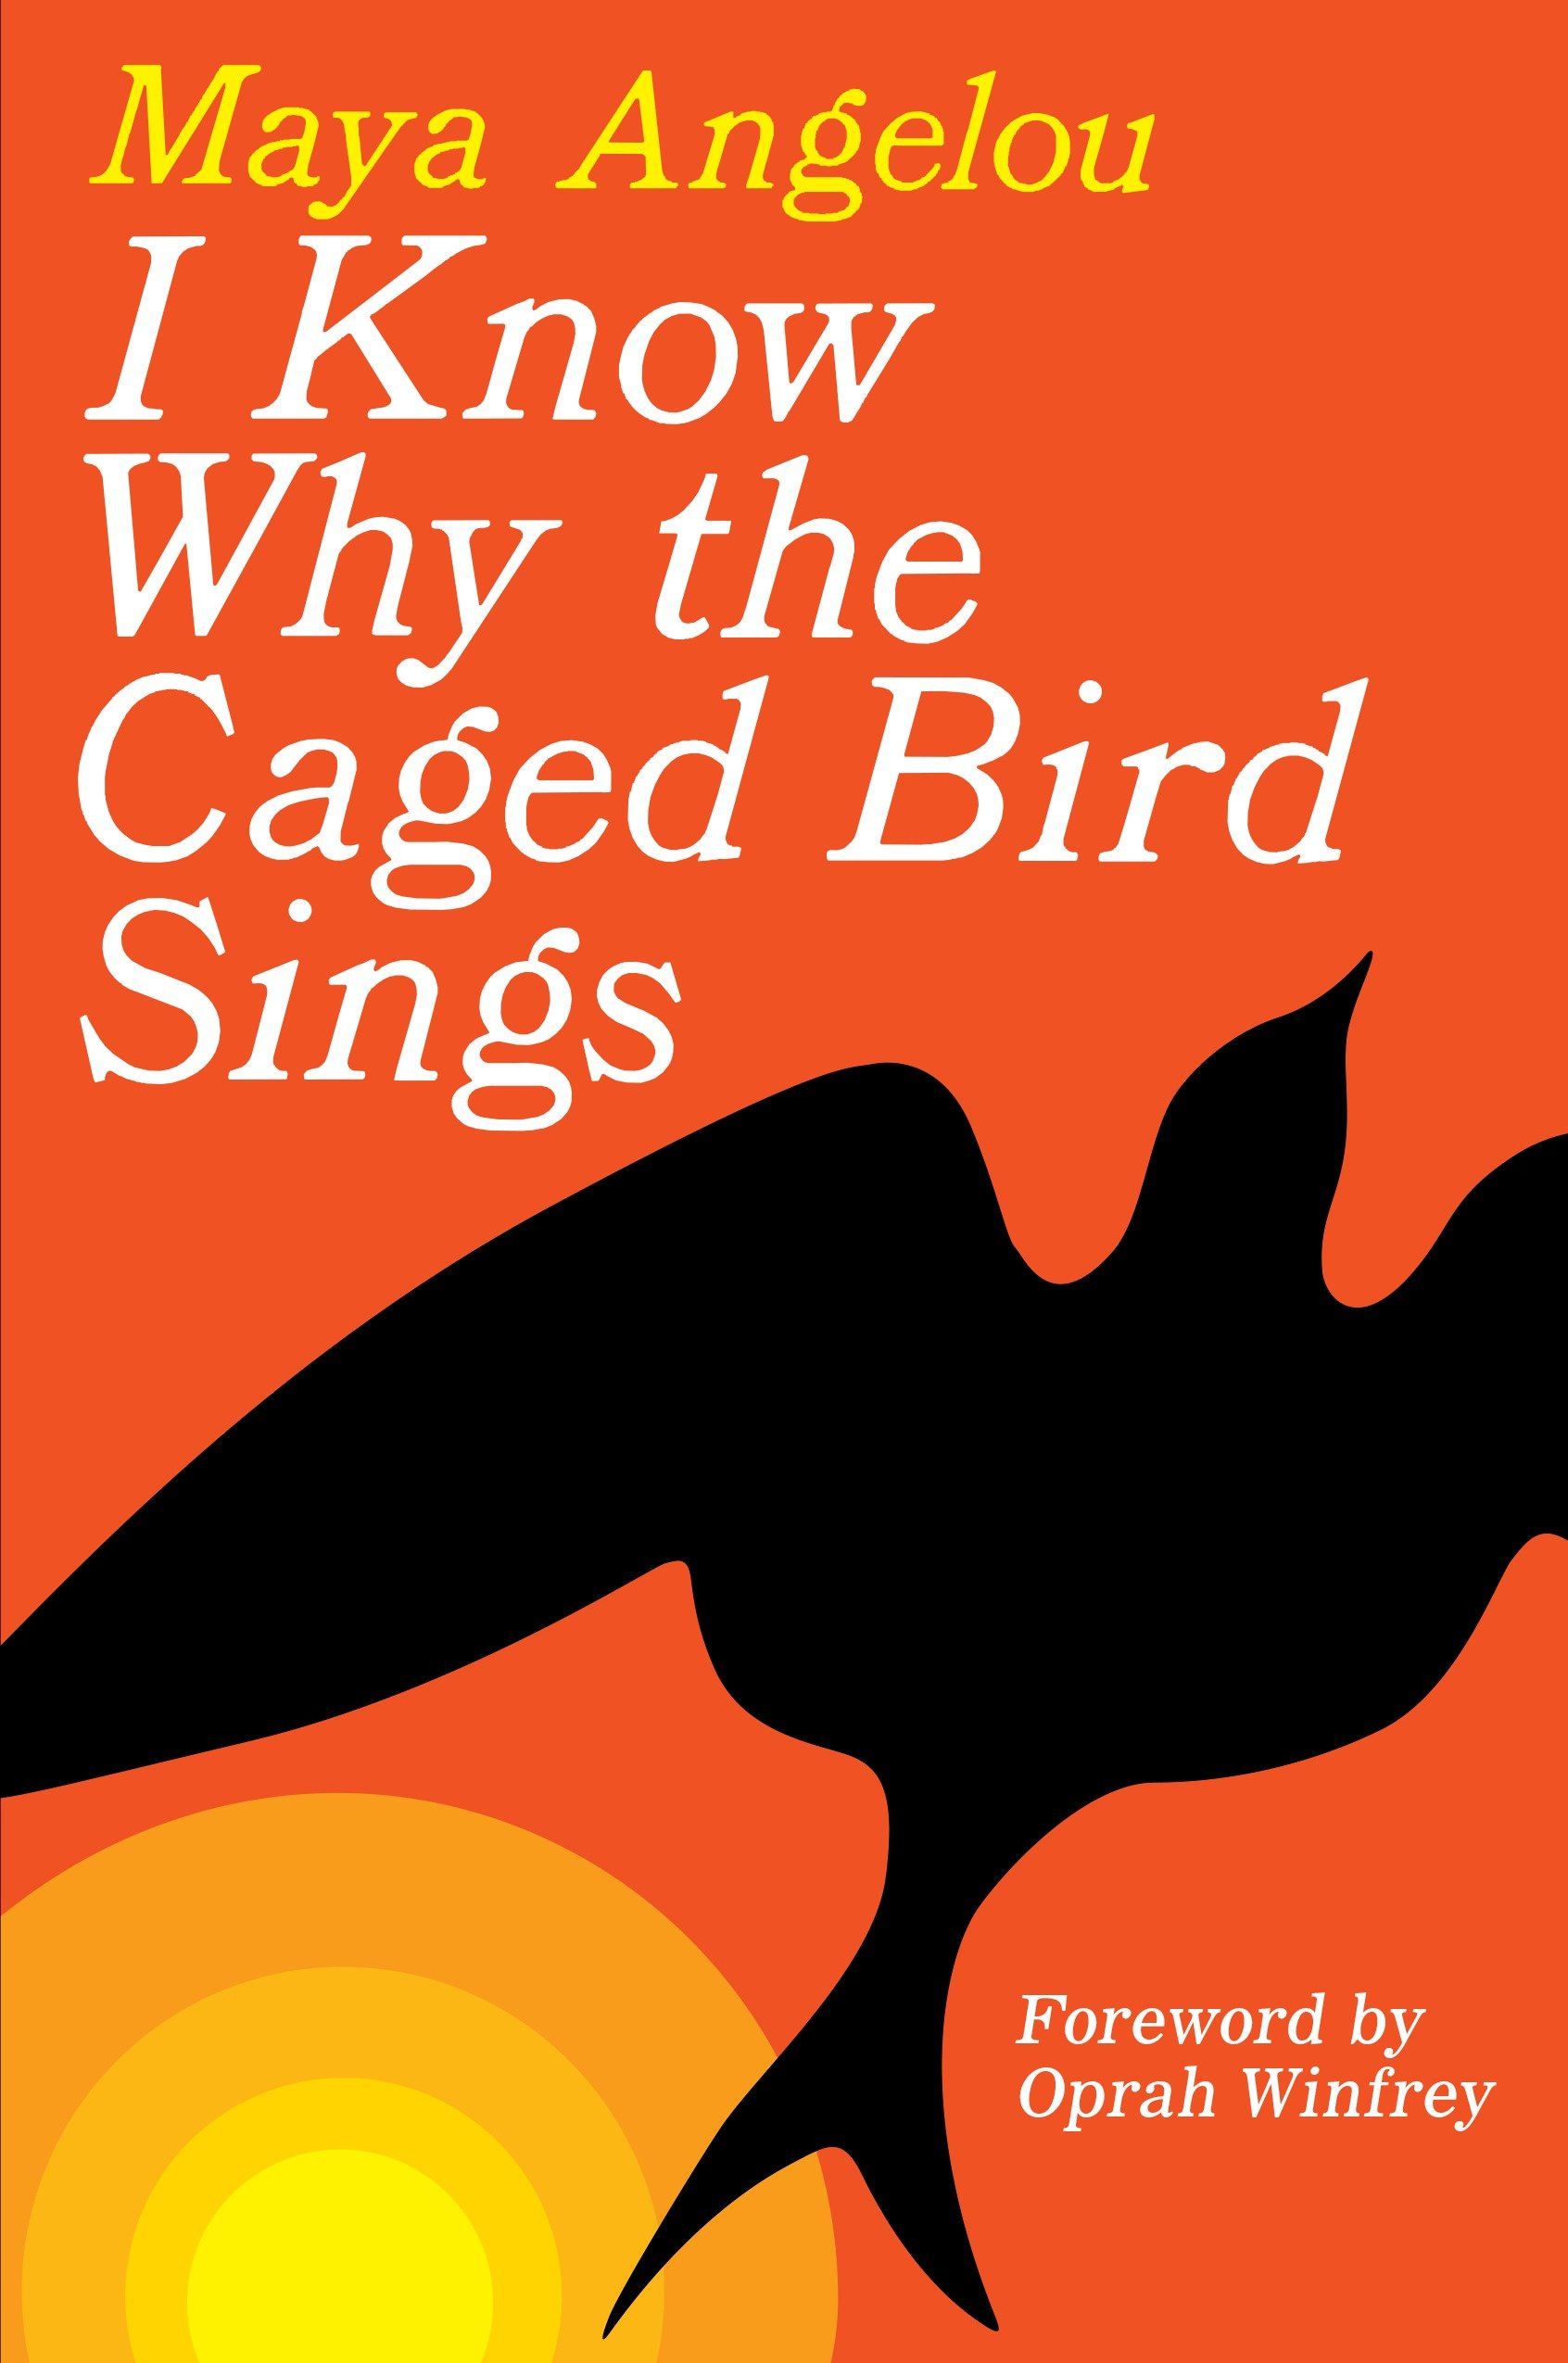 I Know Why the Caged Bird Sings [electronic resource]